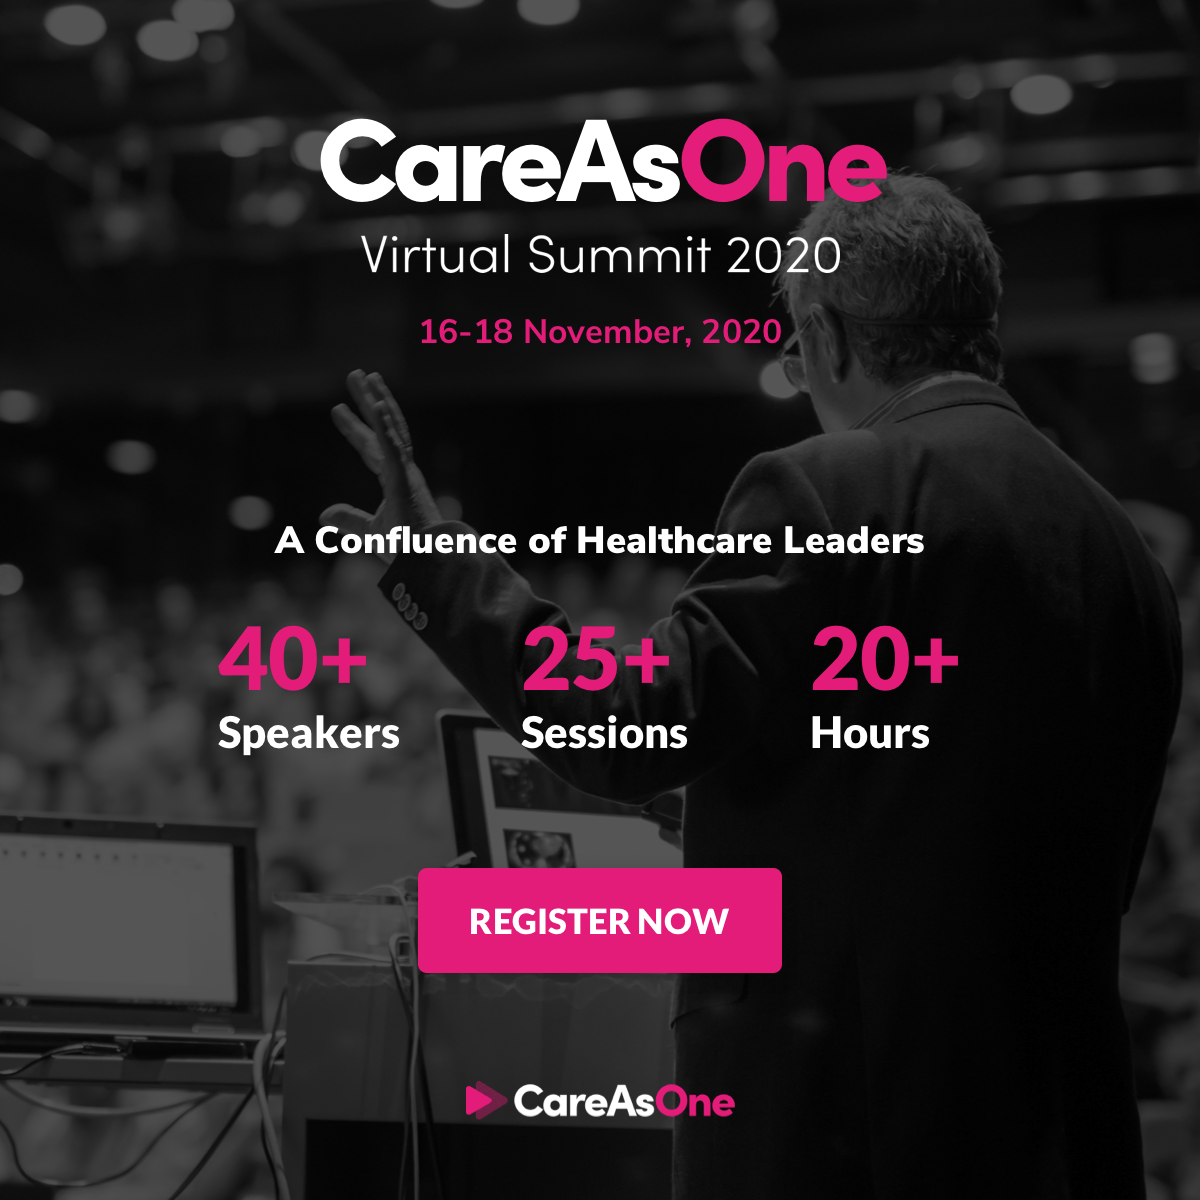 CareAsOne Community Launches Summit to Convene Healthcare Expert Discussions on the Future of Healthcare